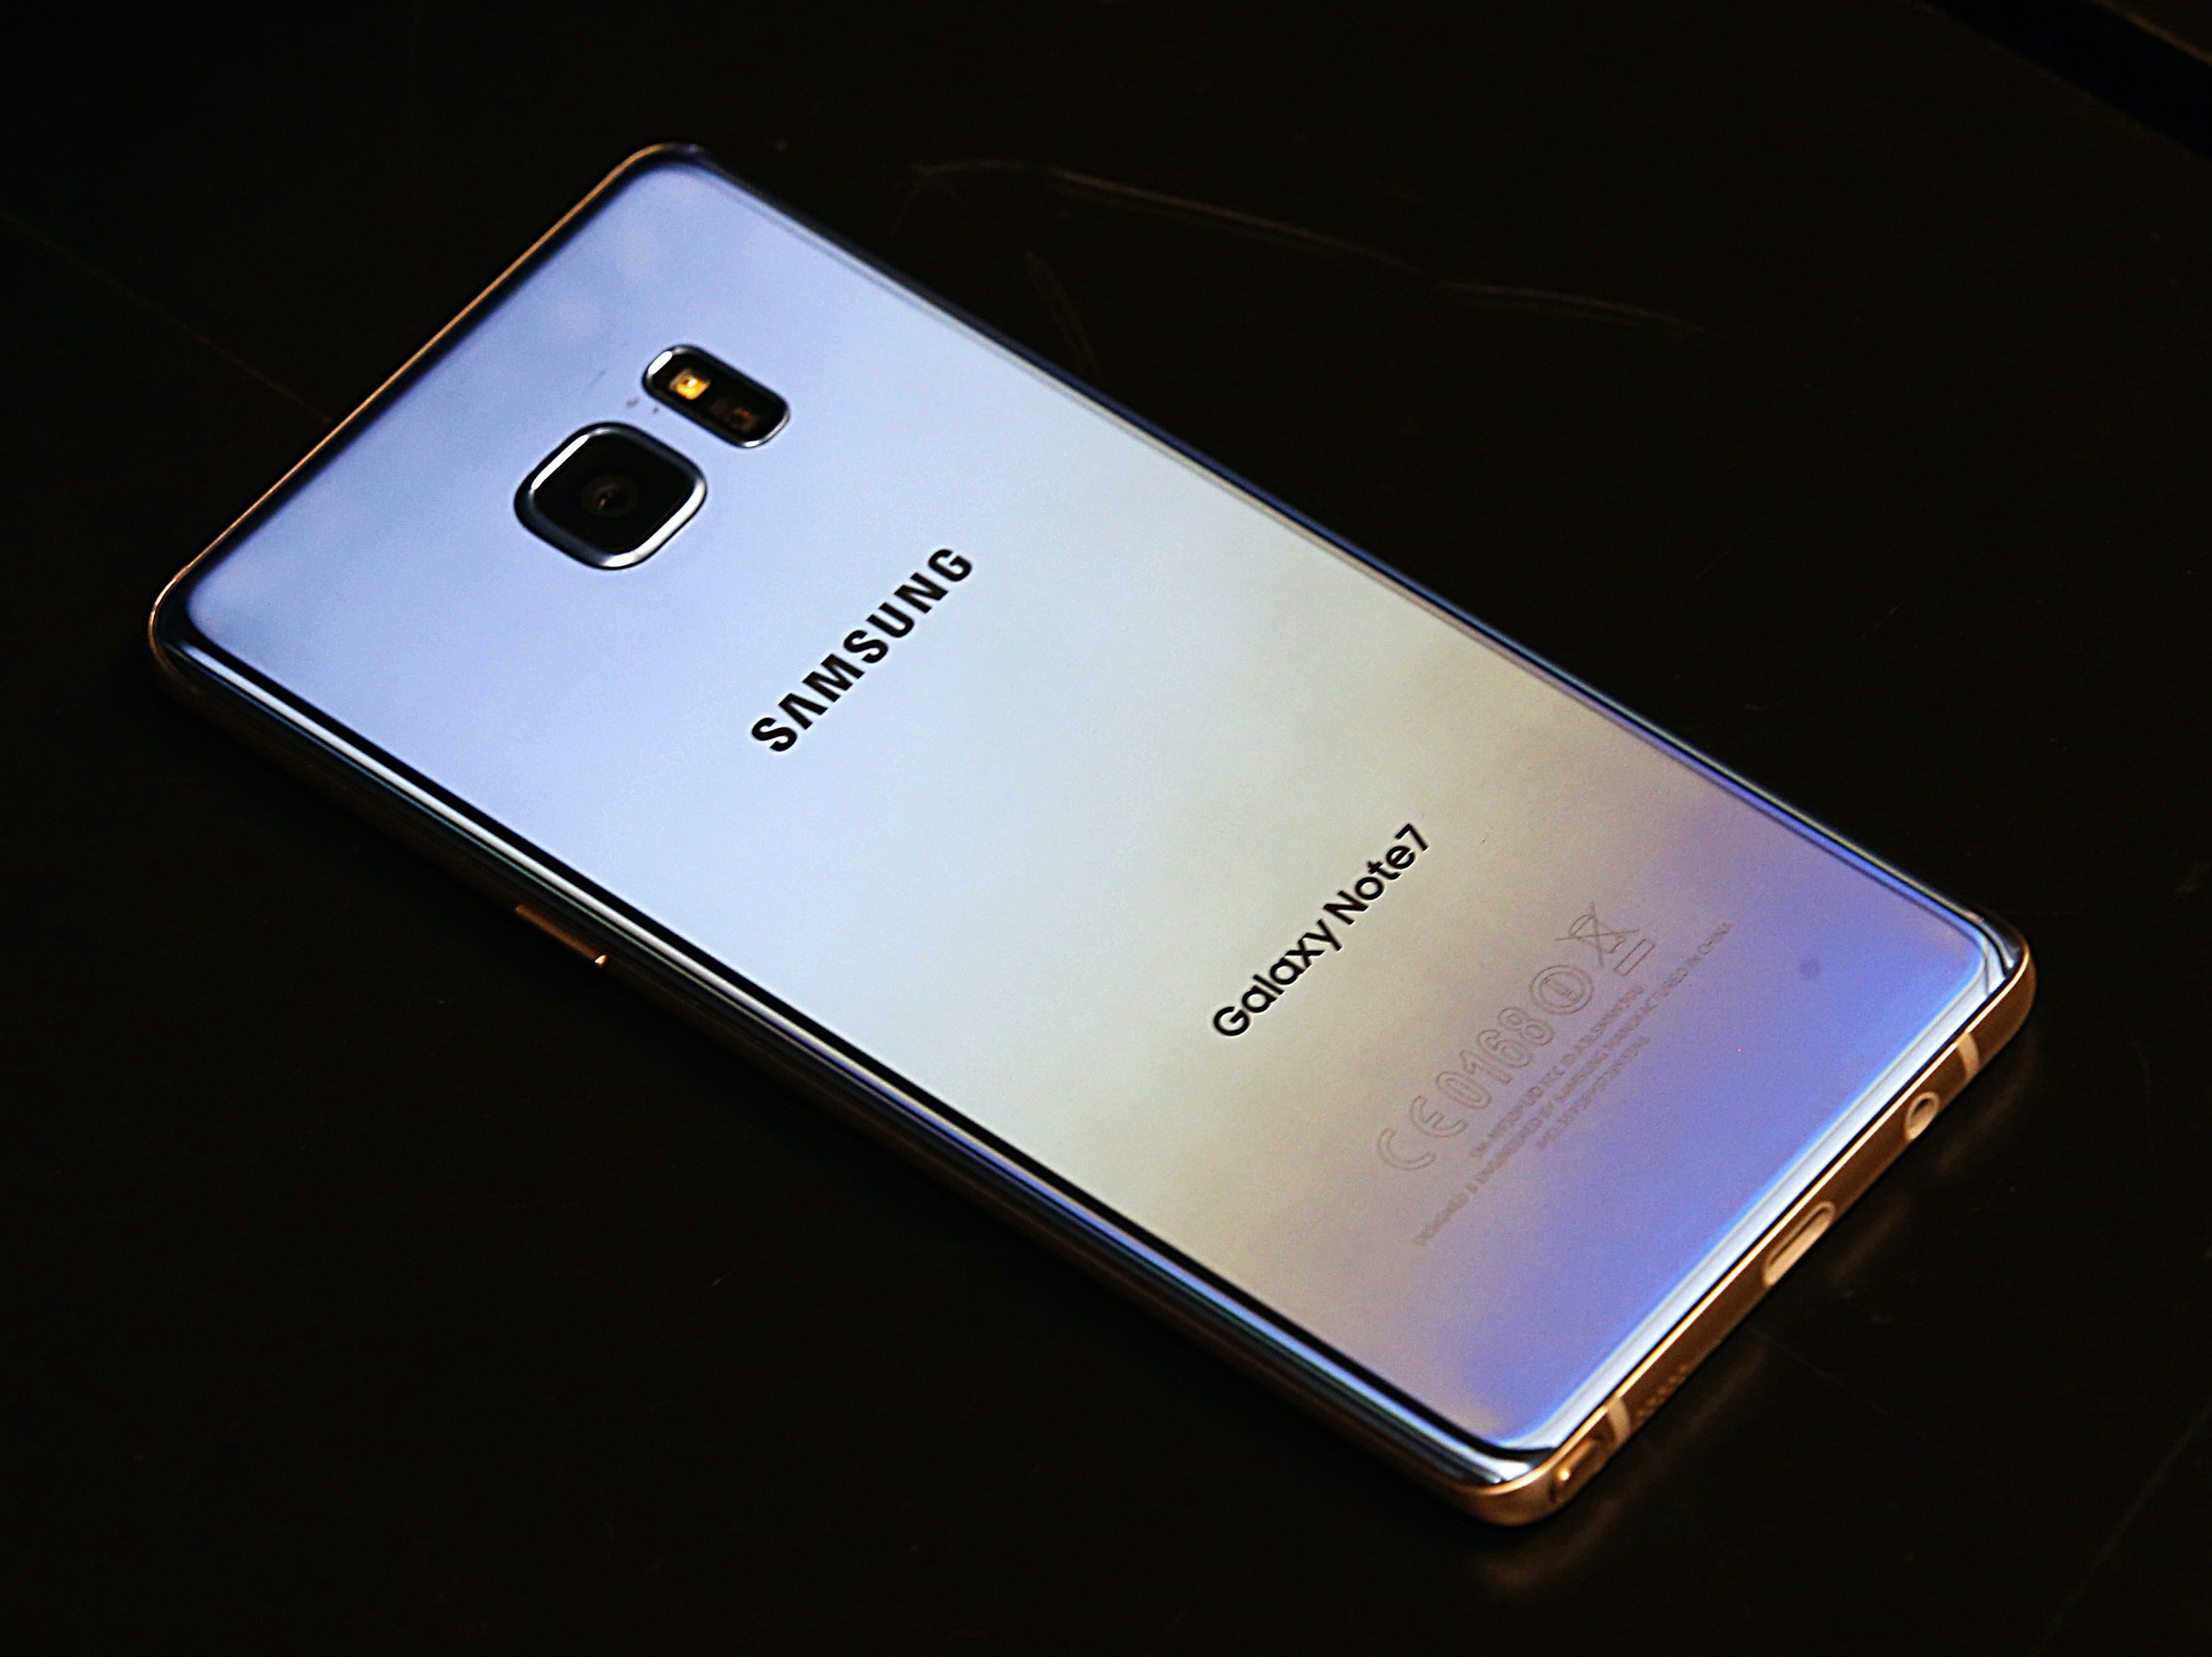 Samsung Halts All Sales of Its Exploding Galaxy Note 7 Phone